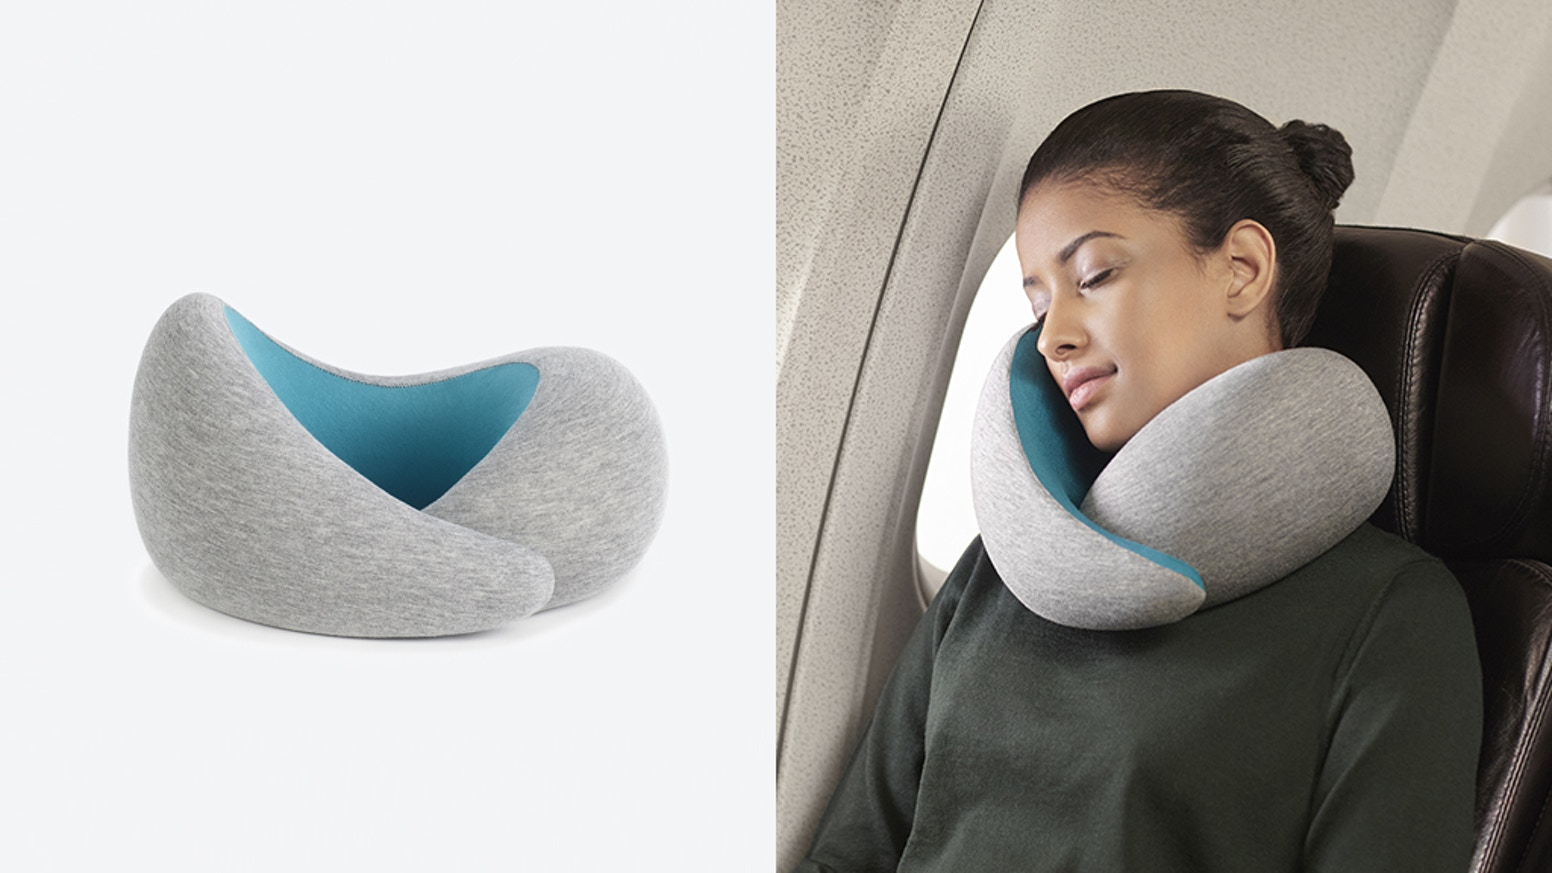 Ostrich Pillow Go Maximum Comfort Sleep For All Necks By